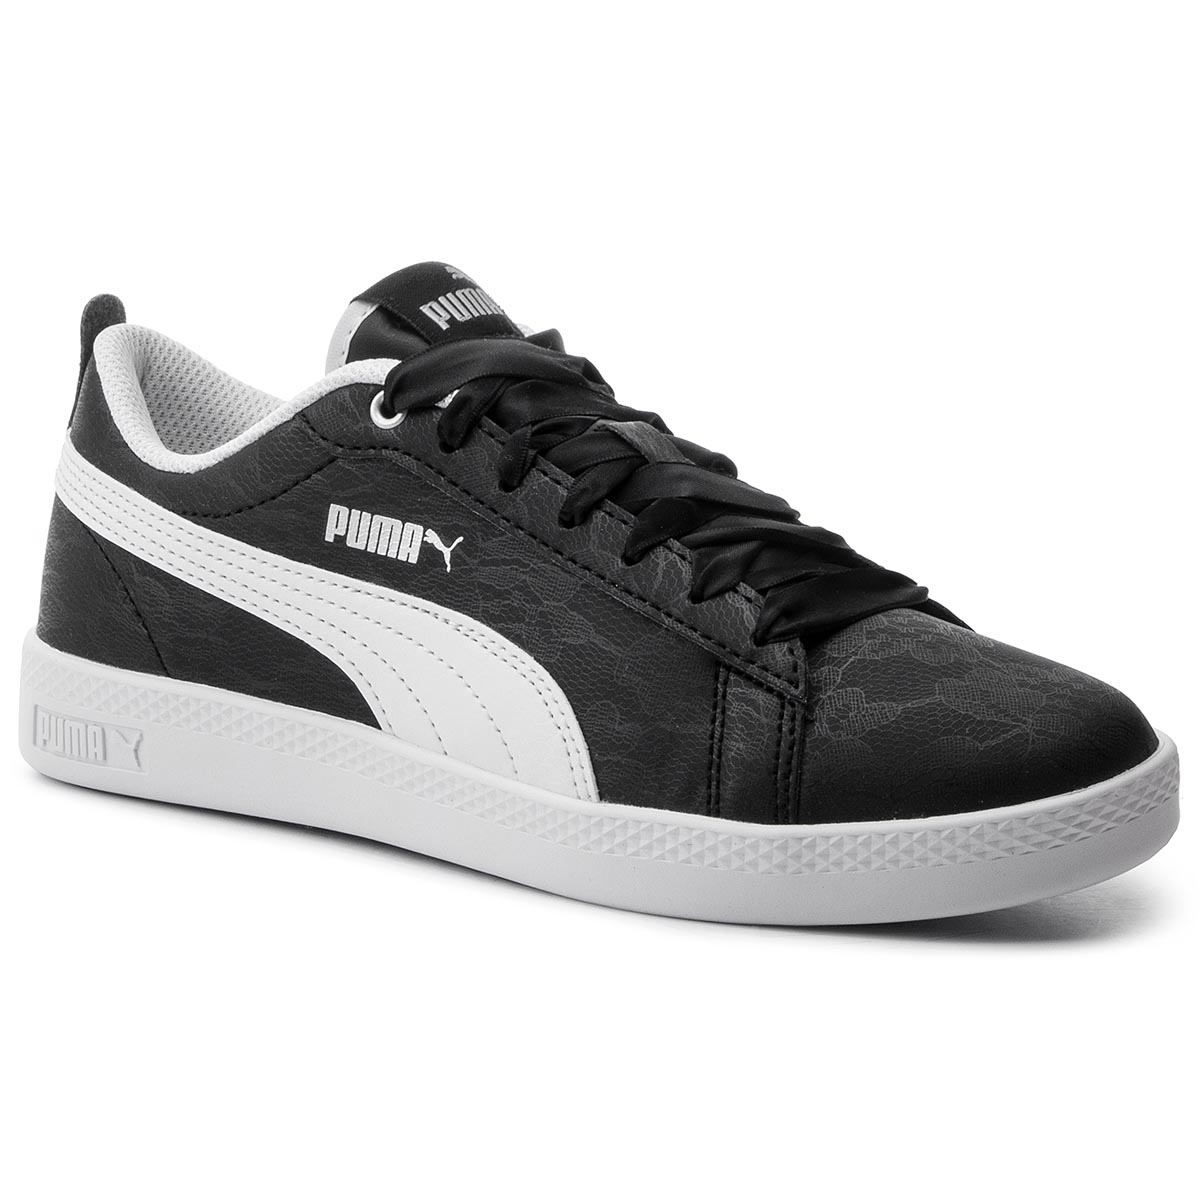 Sneakers PUMA - Smash Wns V2 Summer Pac 369130 01 Puma Black/Puma White